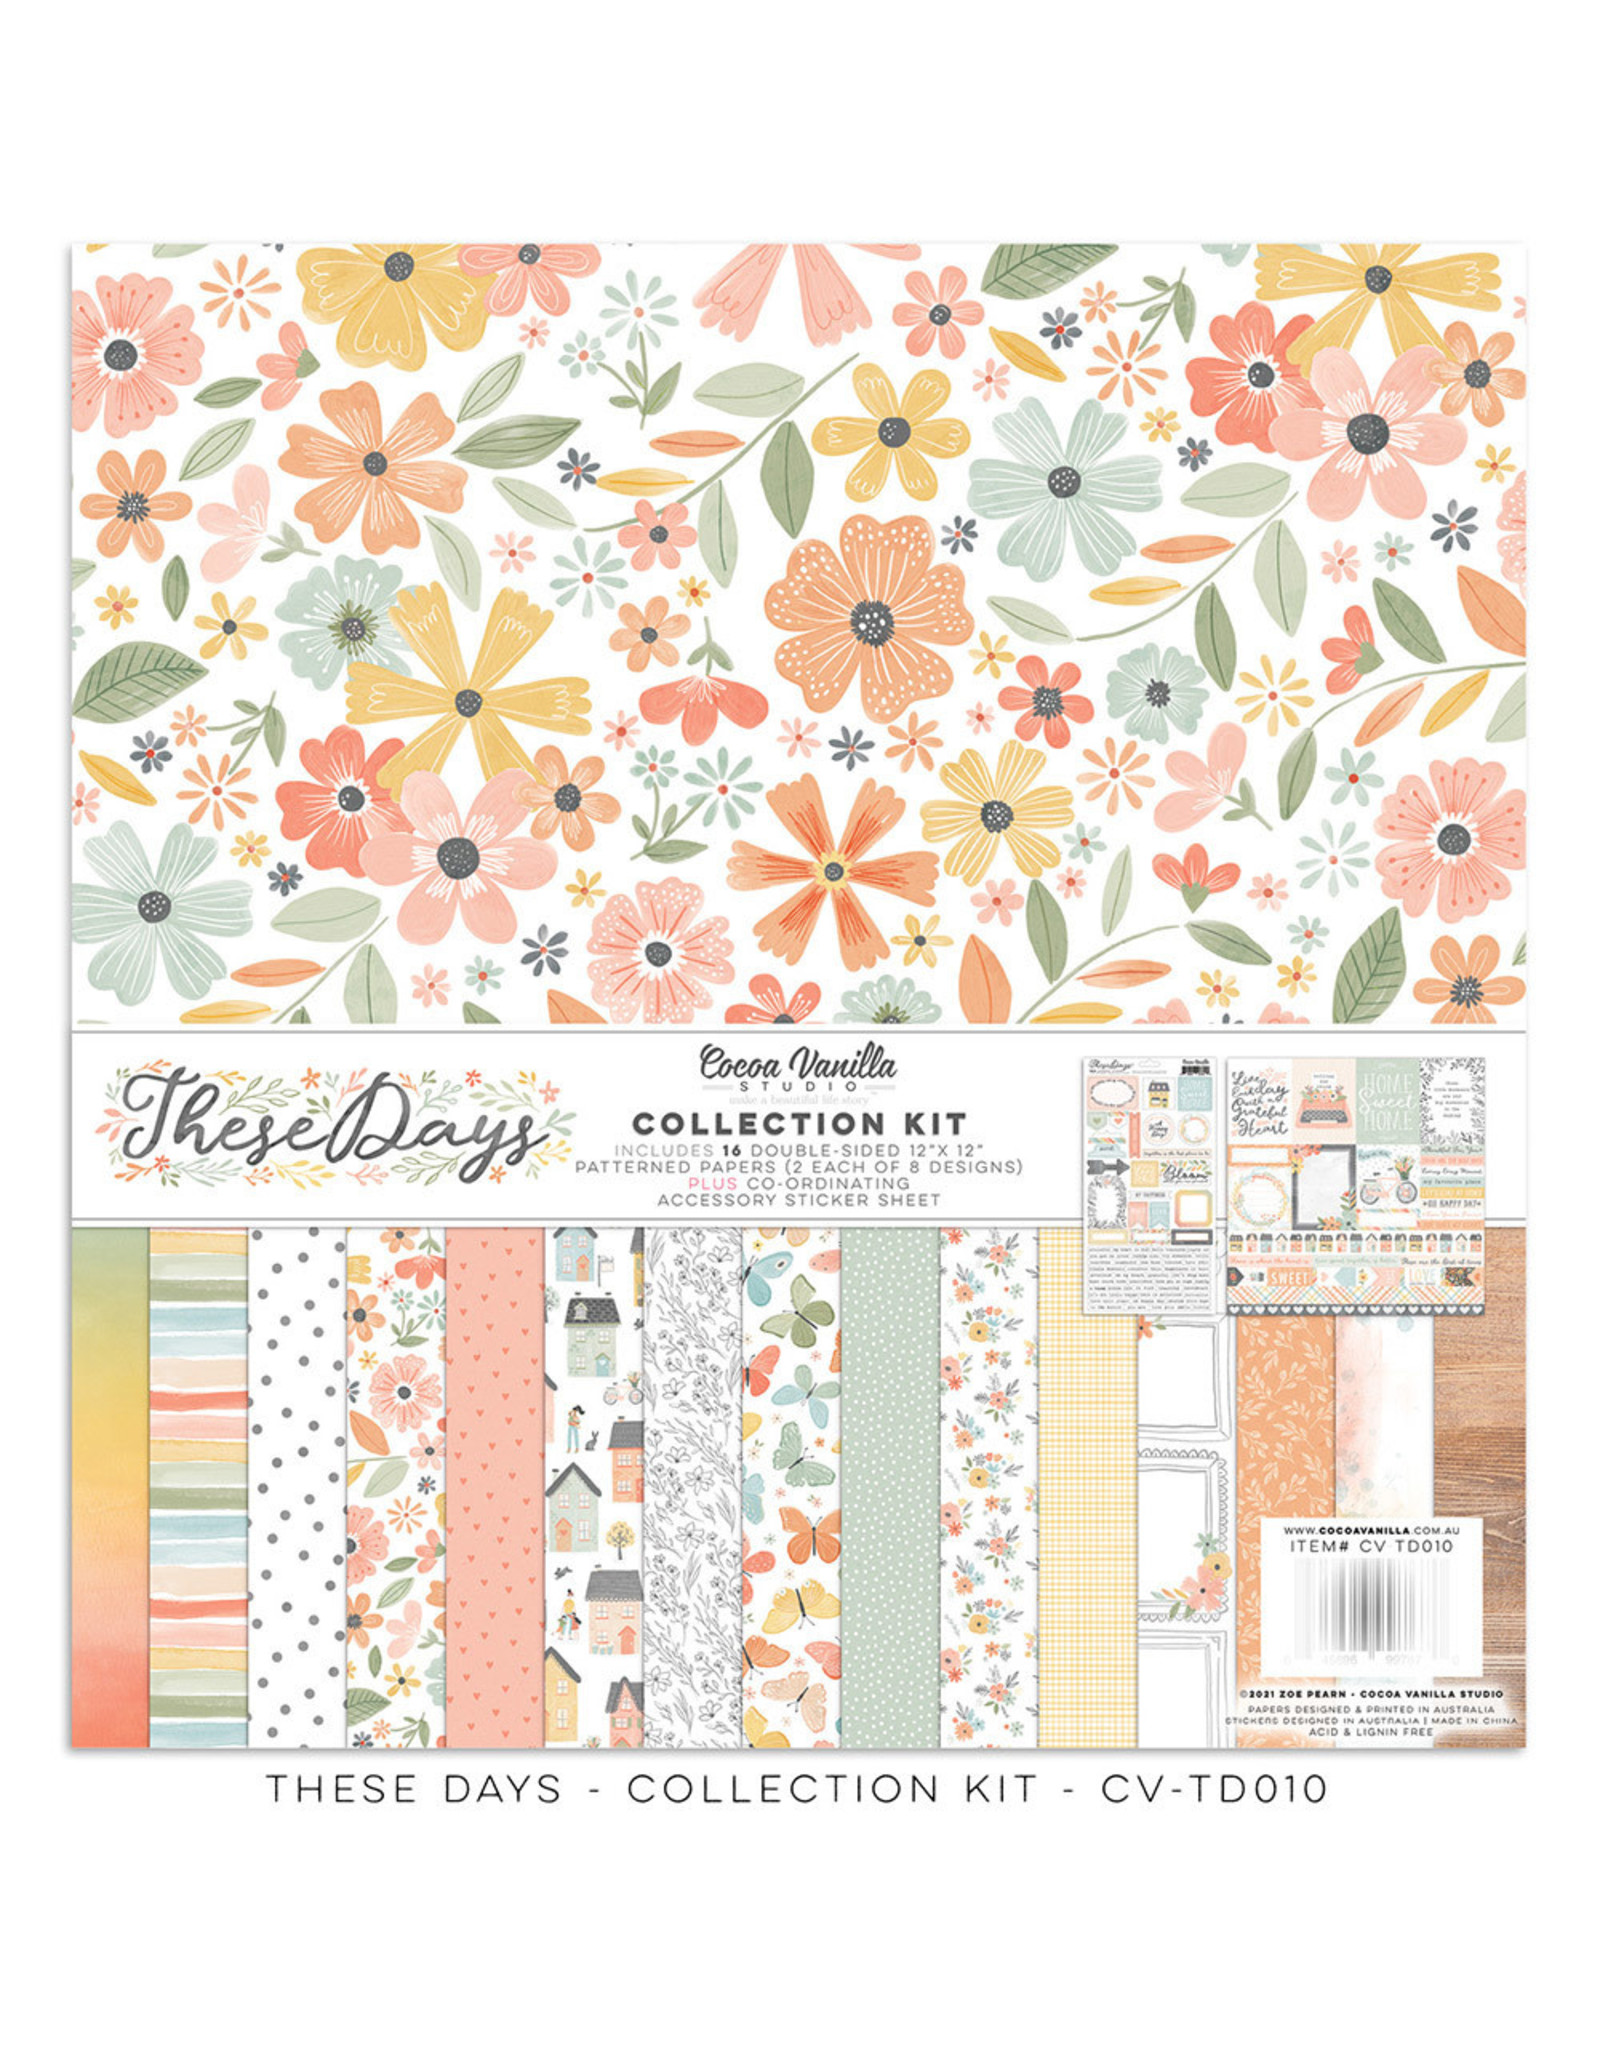 Cocoa Vanilla 12X12 Collection Kit, These Days